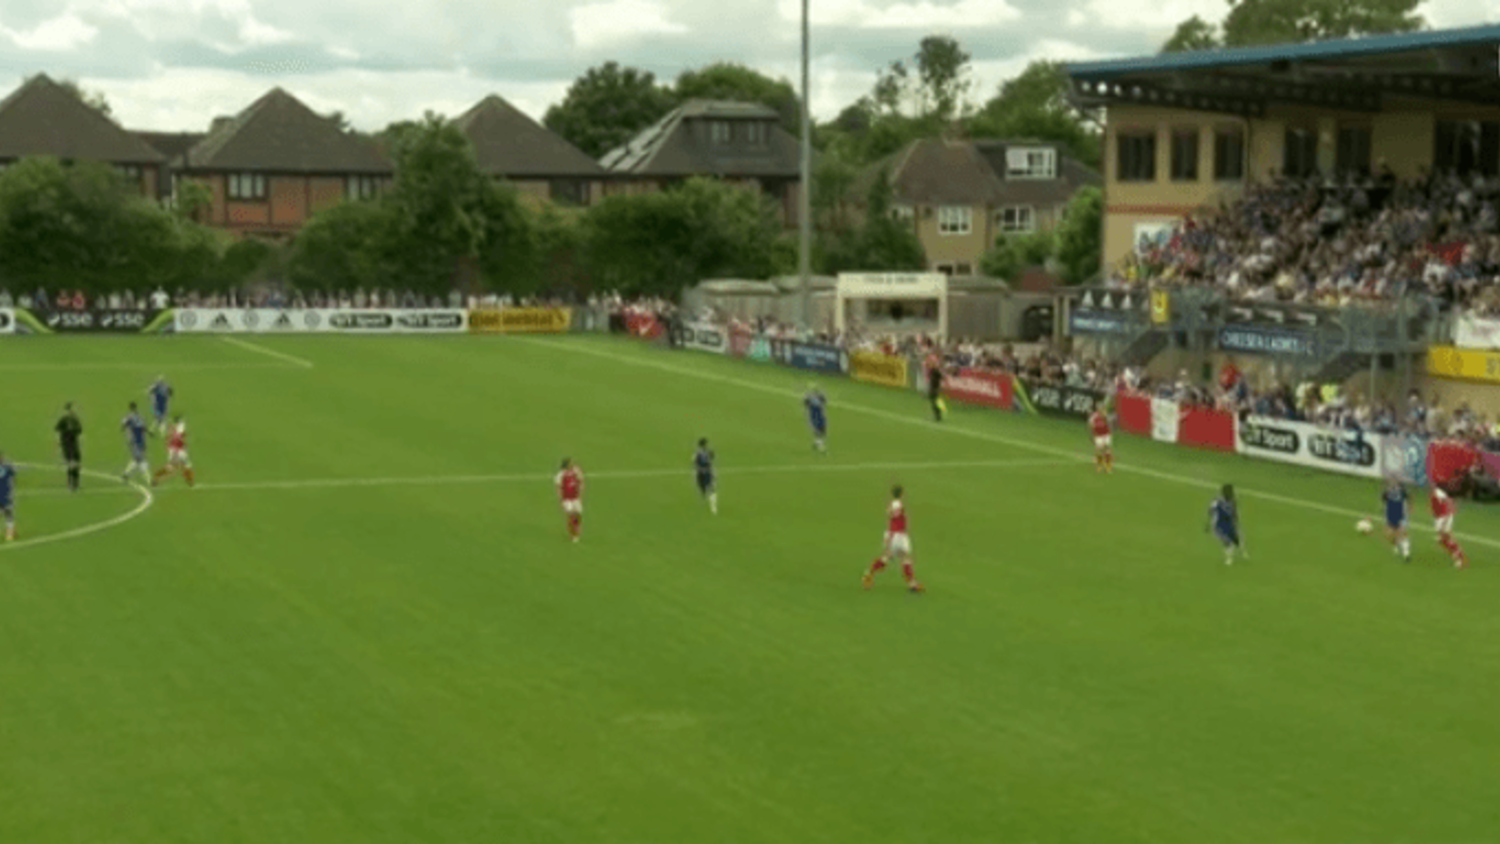 Arsenal's Alex Scott scores incredible 40 yard own goal in WSL against London rivals Chelsea